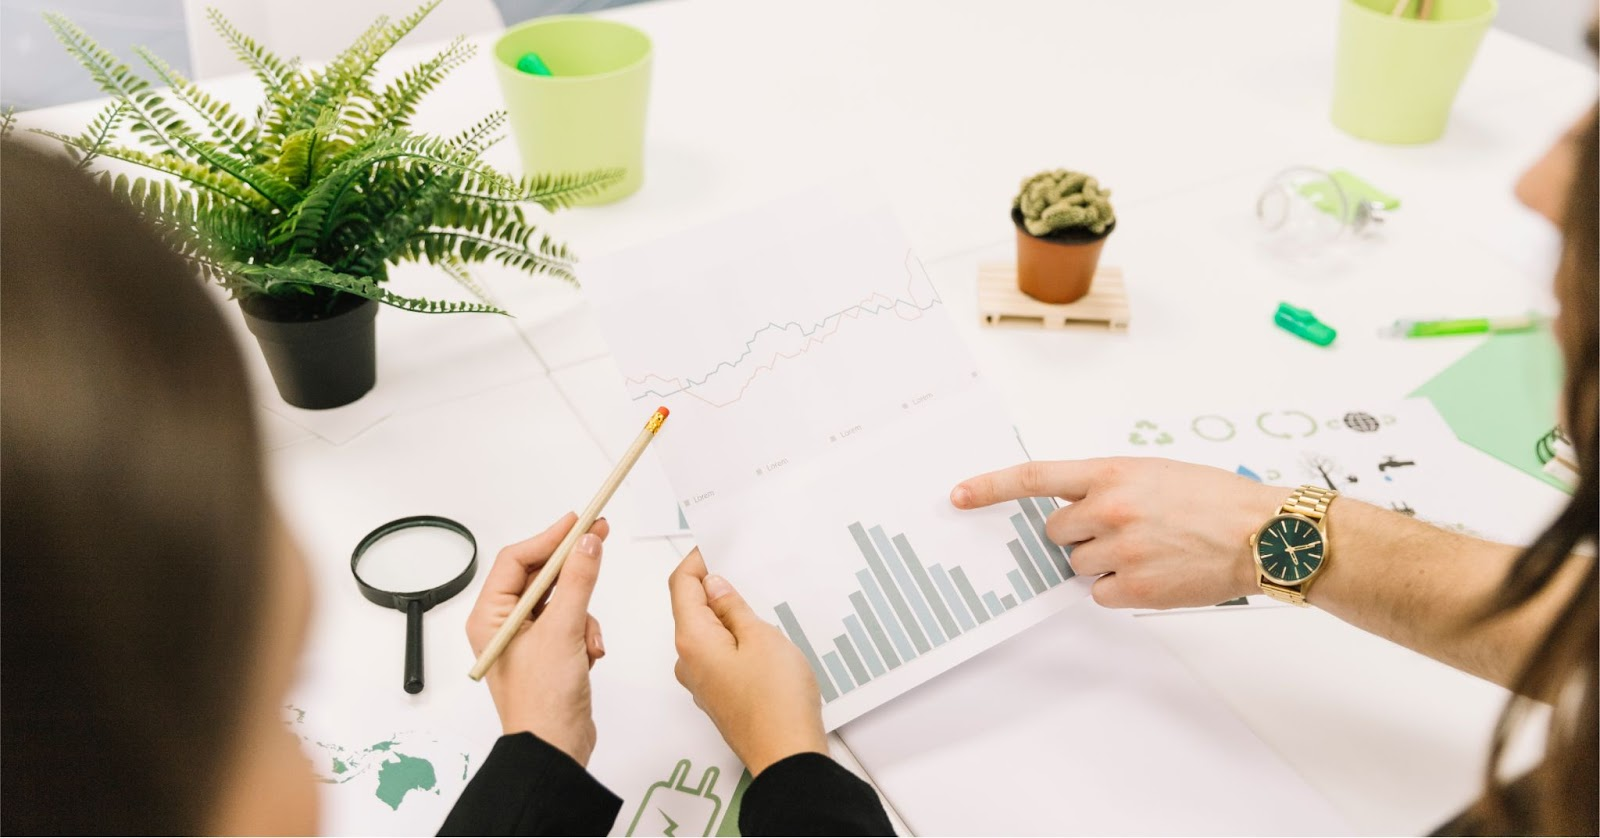 4 Trends to Build a Healthy Workplace for Small Businesses in 2021